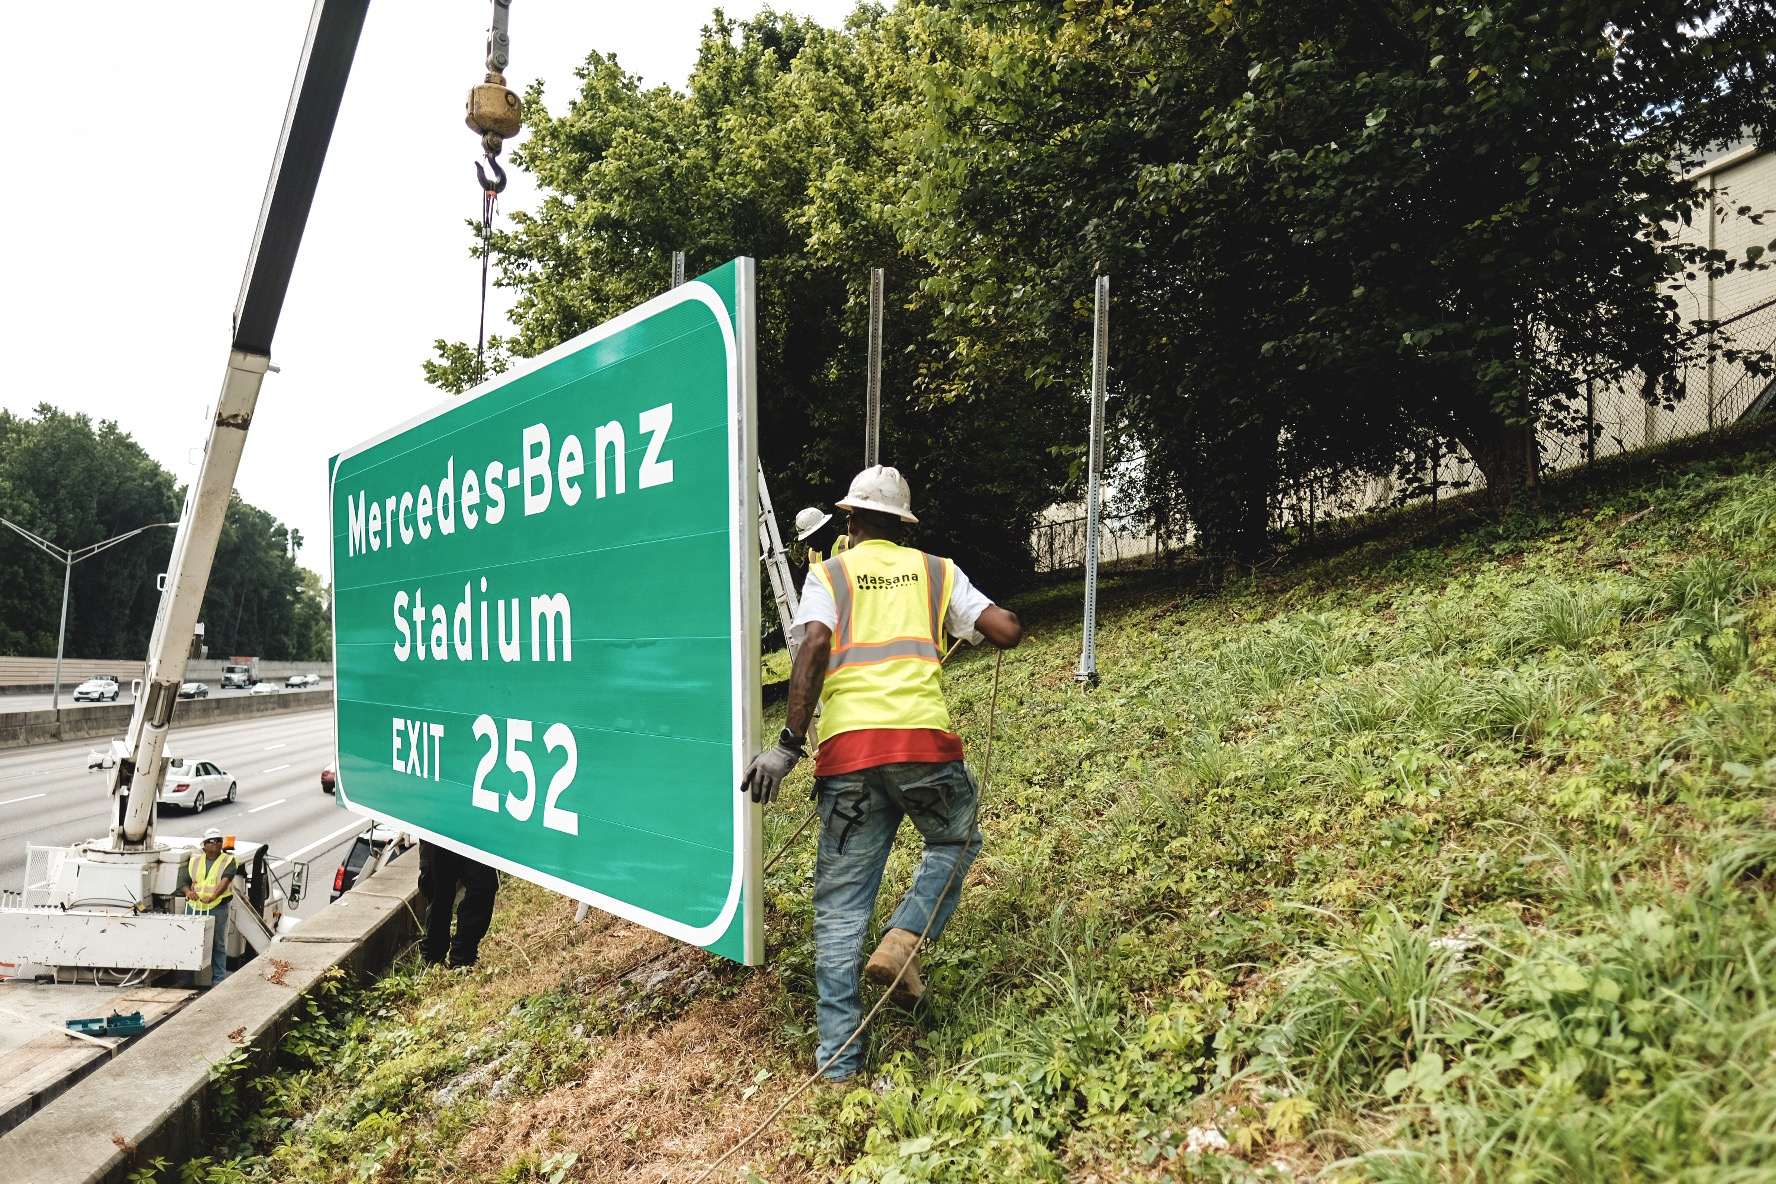 A new sign for Mercedes-Benz Stadium being installed along an Atlanta freeway.